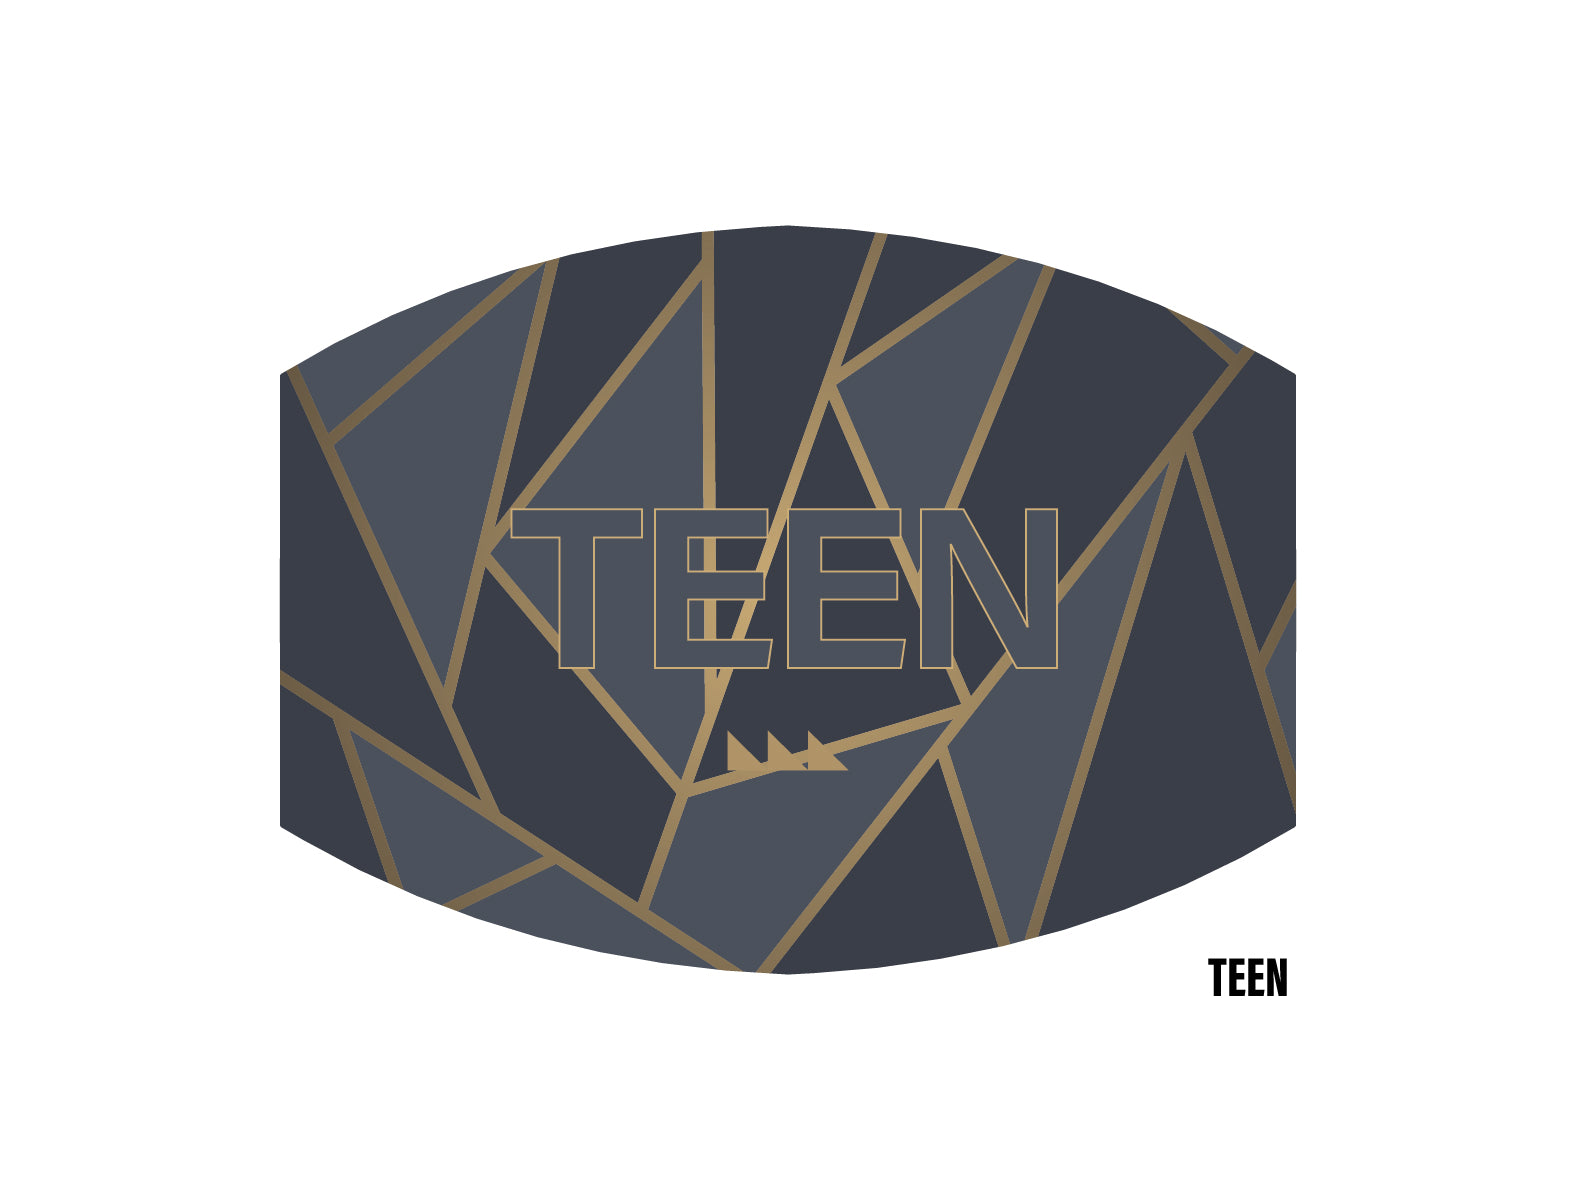 Triangular Face Mask (Teen)